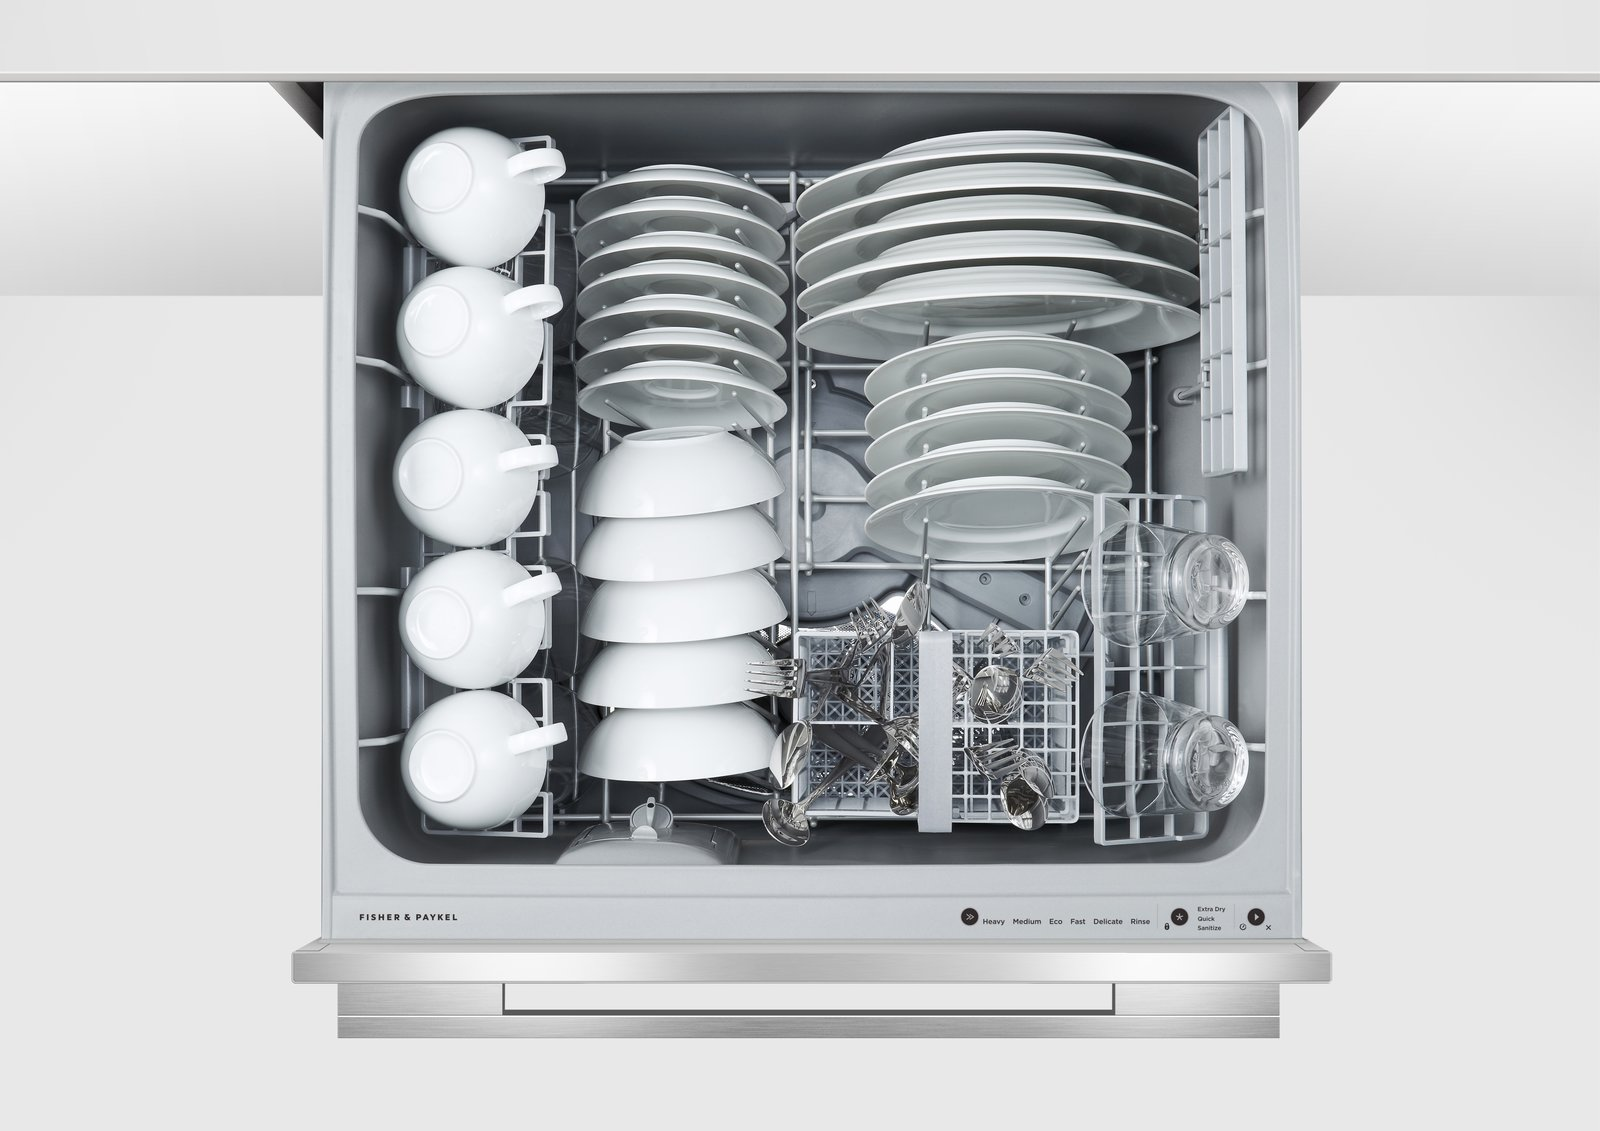 Single Door DishDrawer Dishwasher By Fisher U0026amp; Paykel From $649  Available In Single